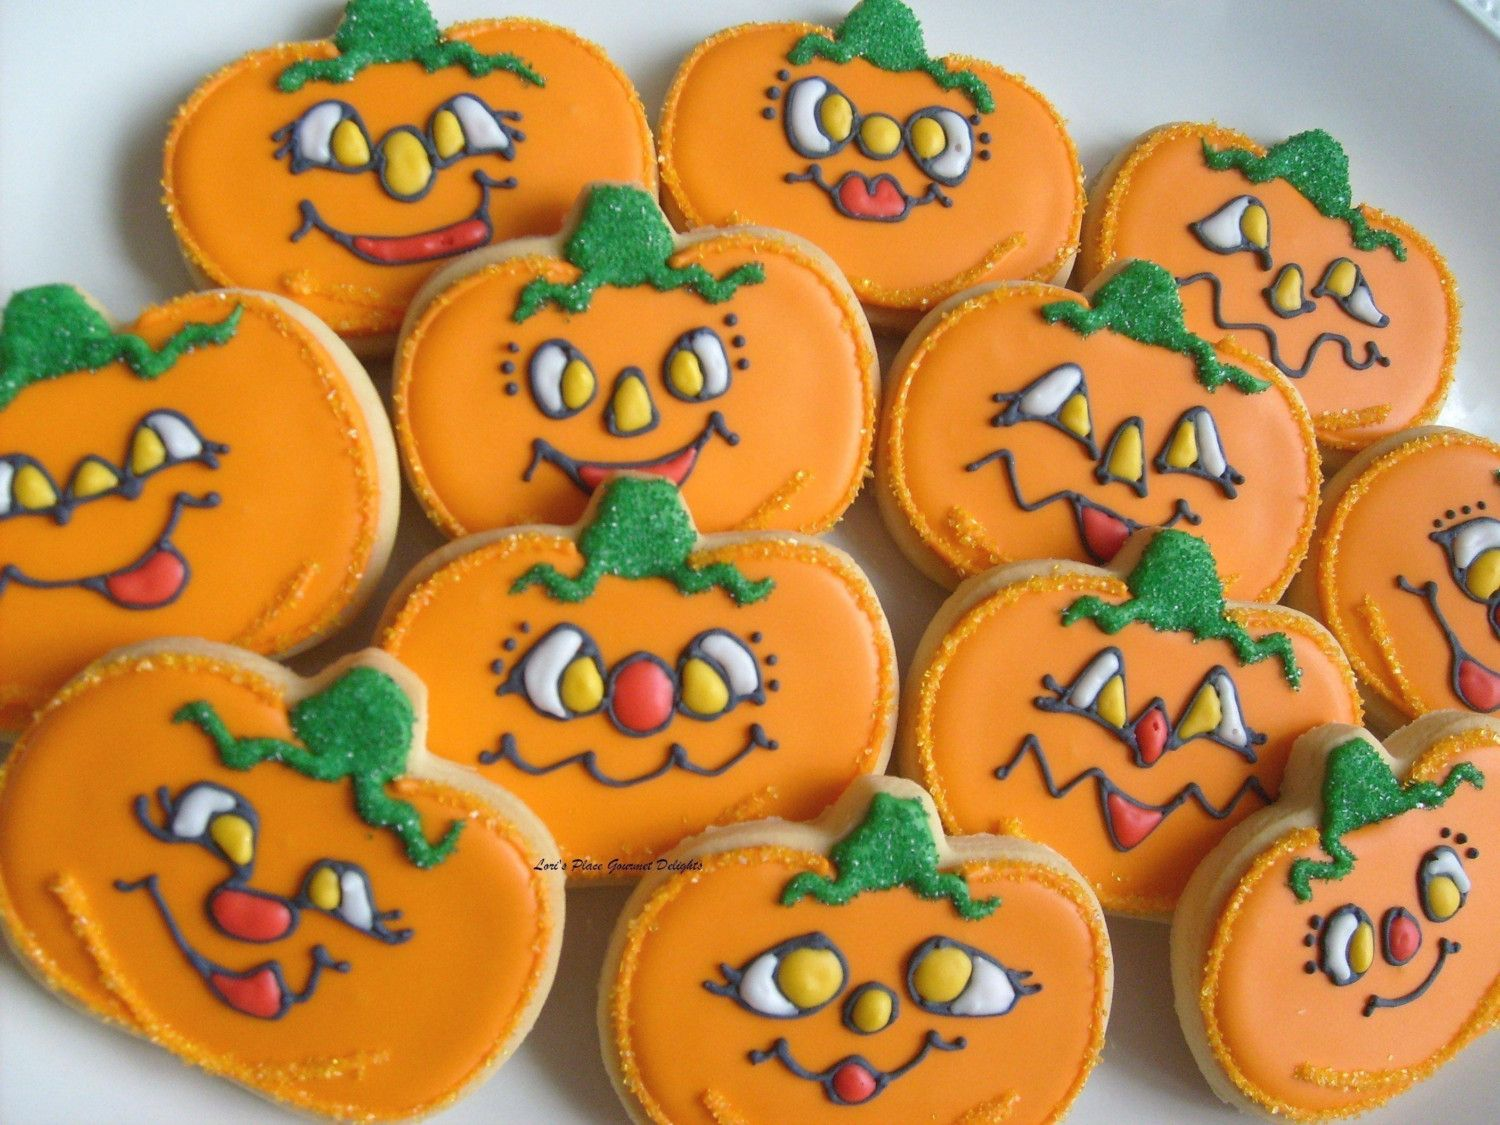 JACK O - Pumpkin Cookie Favors - Halloween Decorated Cookie Favors - Halloween Decorated Cookies